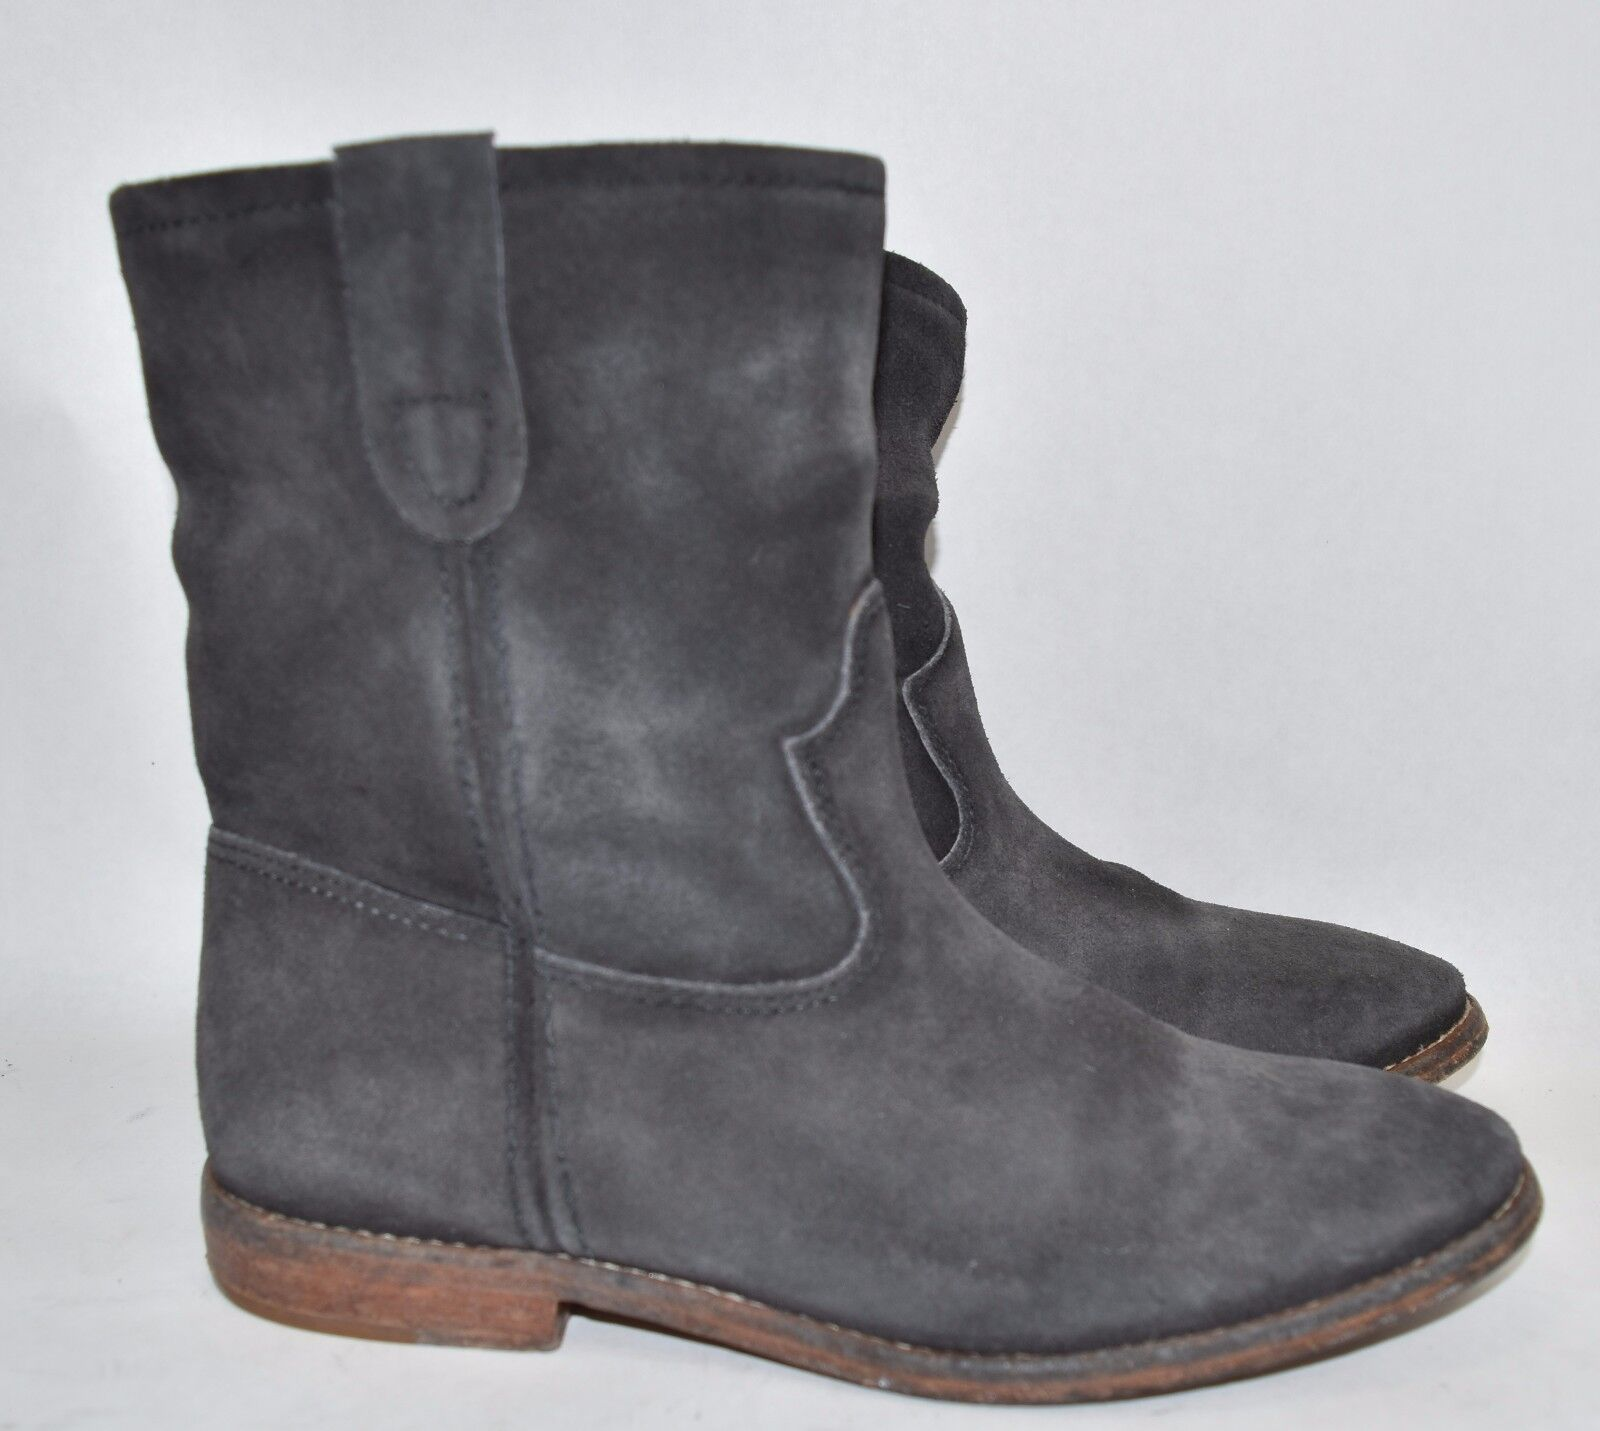 CELEBS CELEBS CELEBS 790 ISABEL MARANT Étoile Crisi DISTRESS suede ankle boot CHARCOAL GREY 36 deff9f